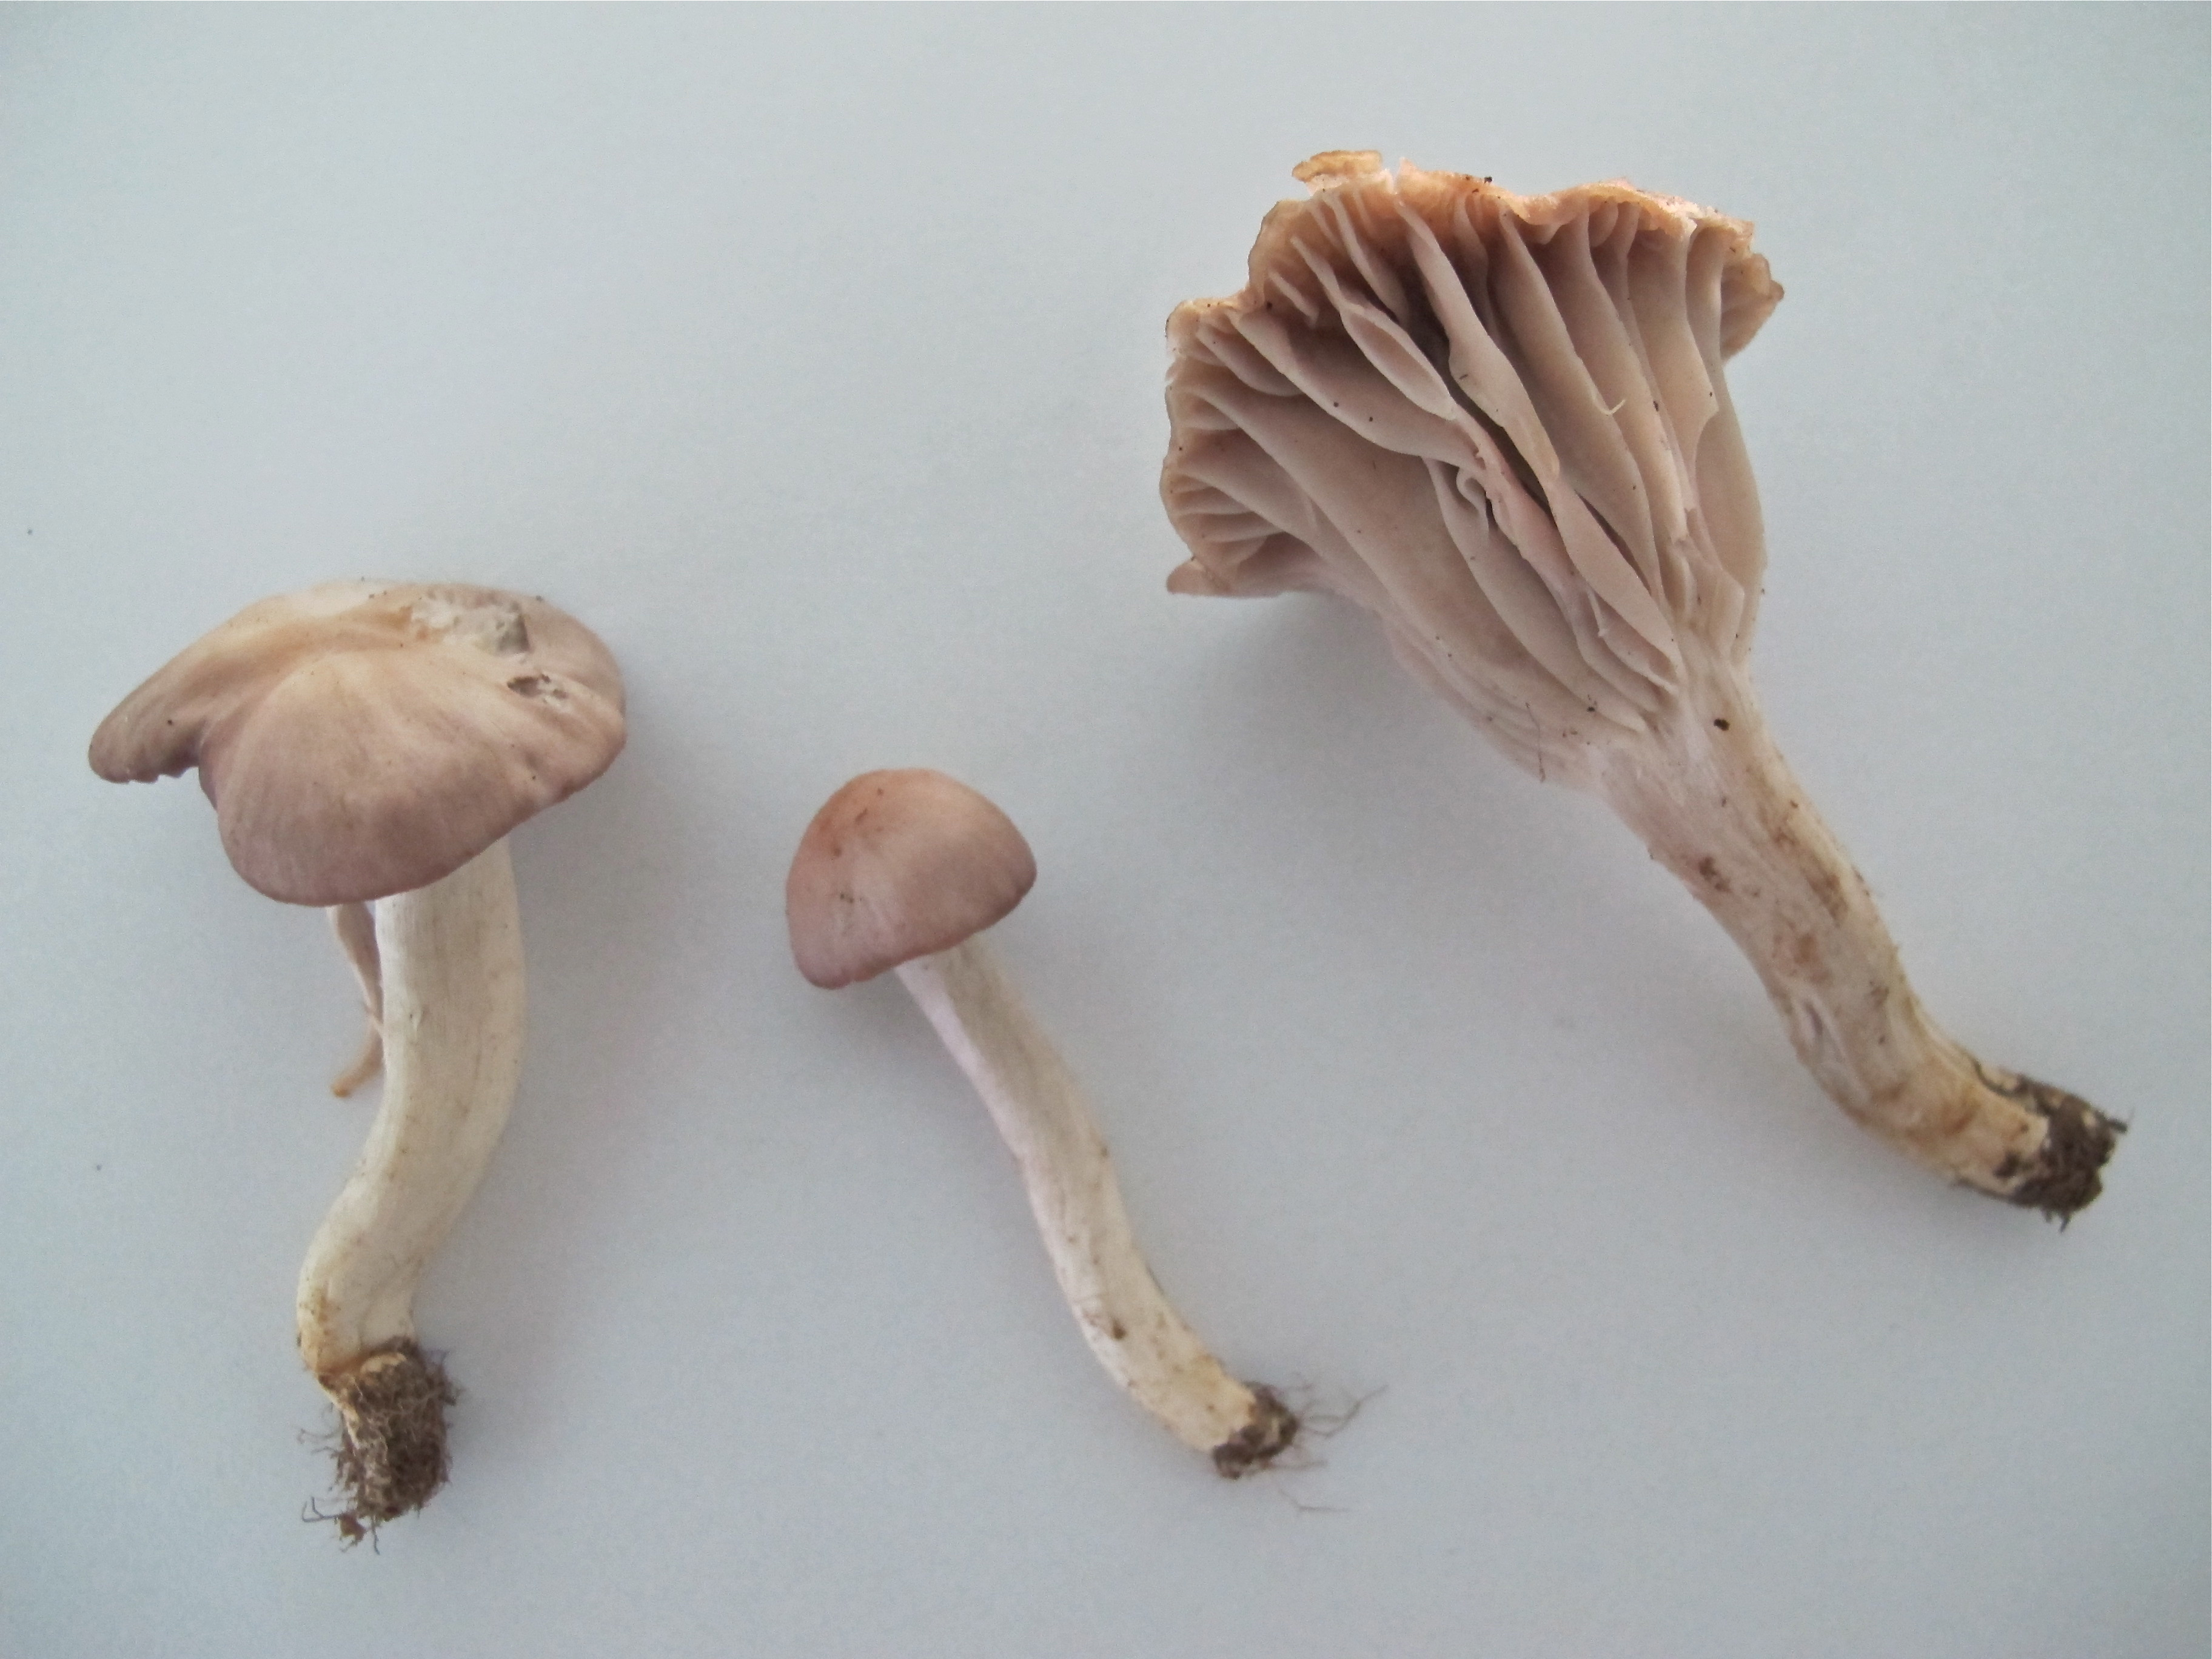 Hygrocybe flavipes image